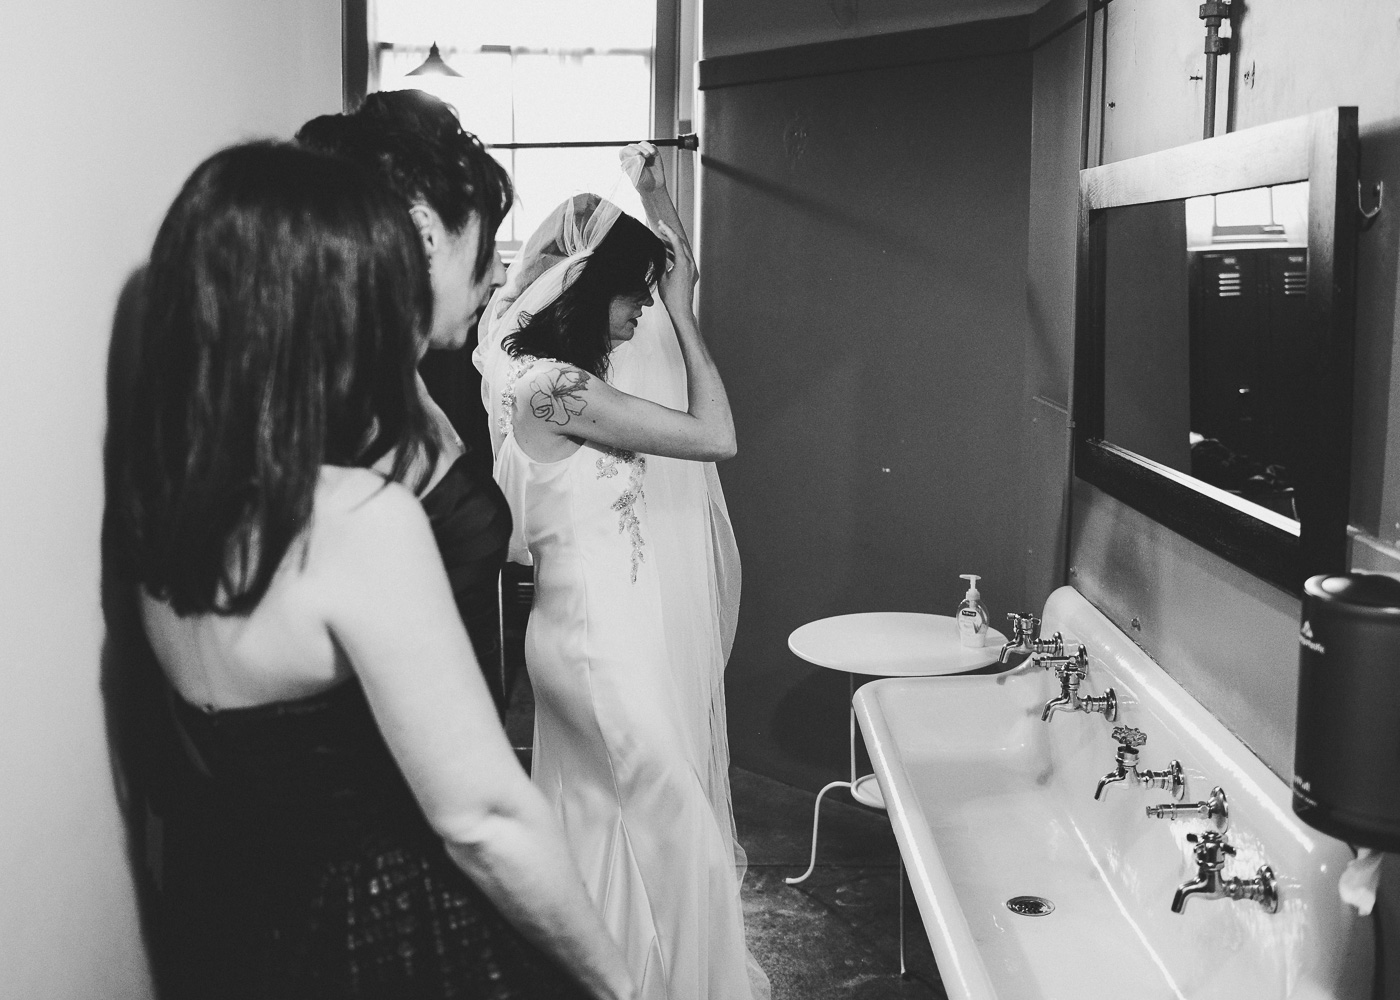 seattleweddingphotographer.jpg